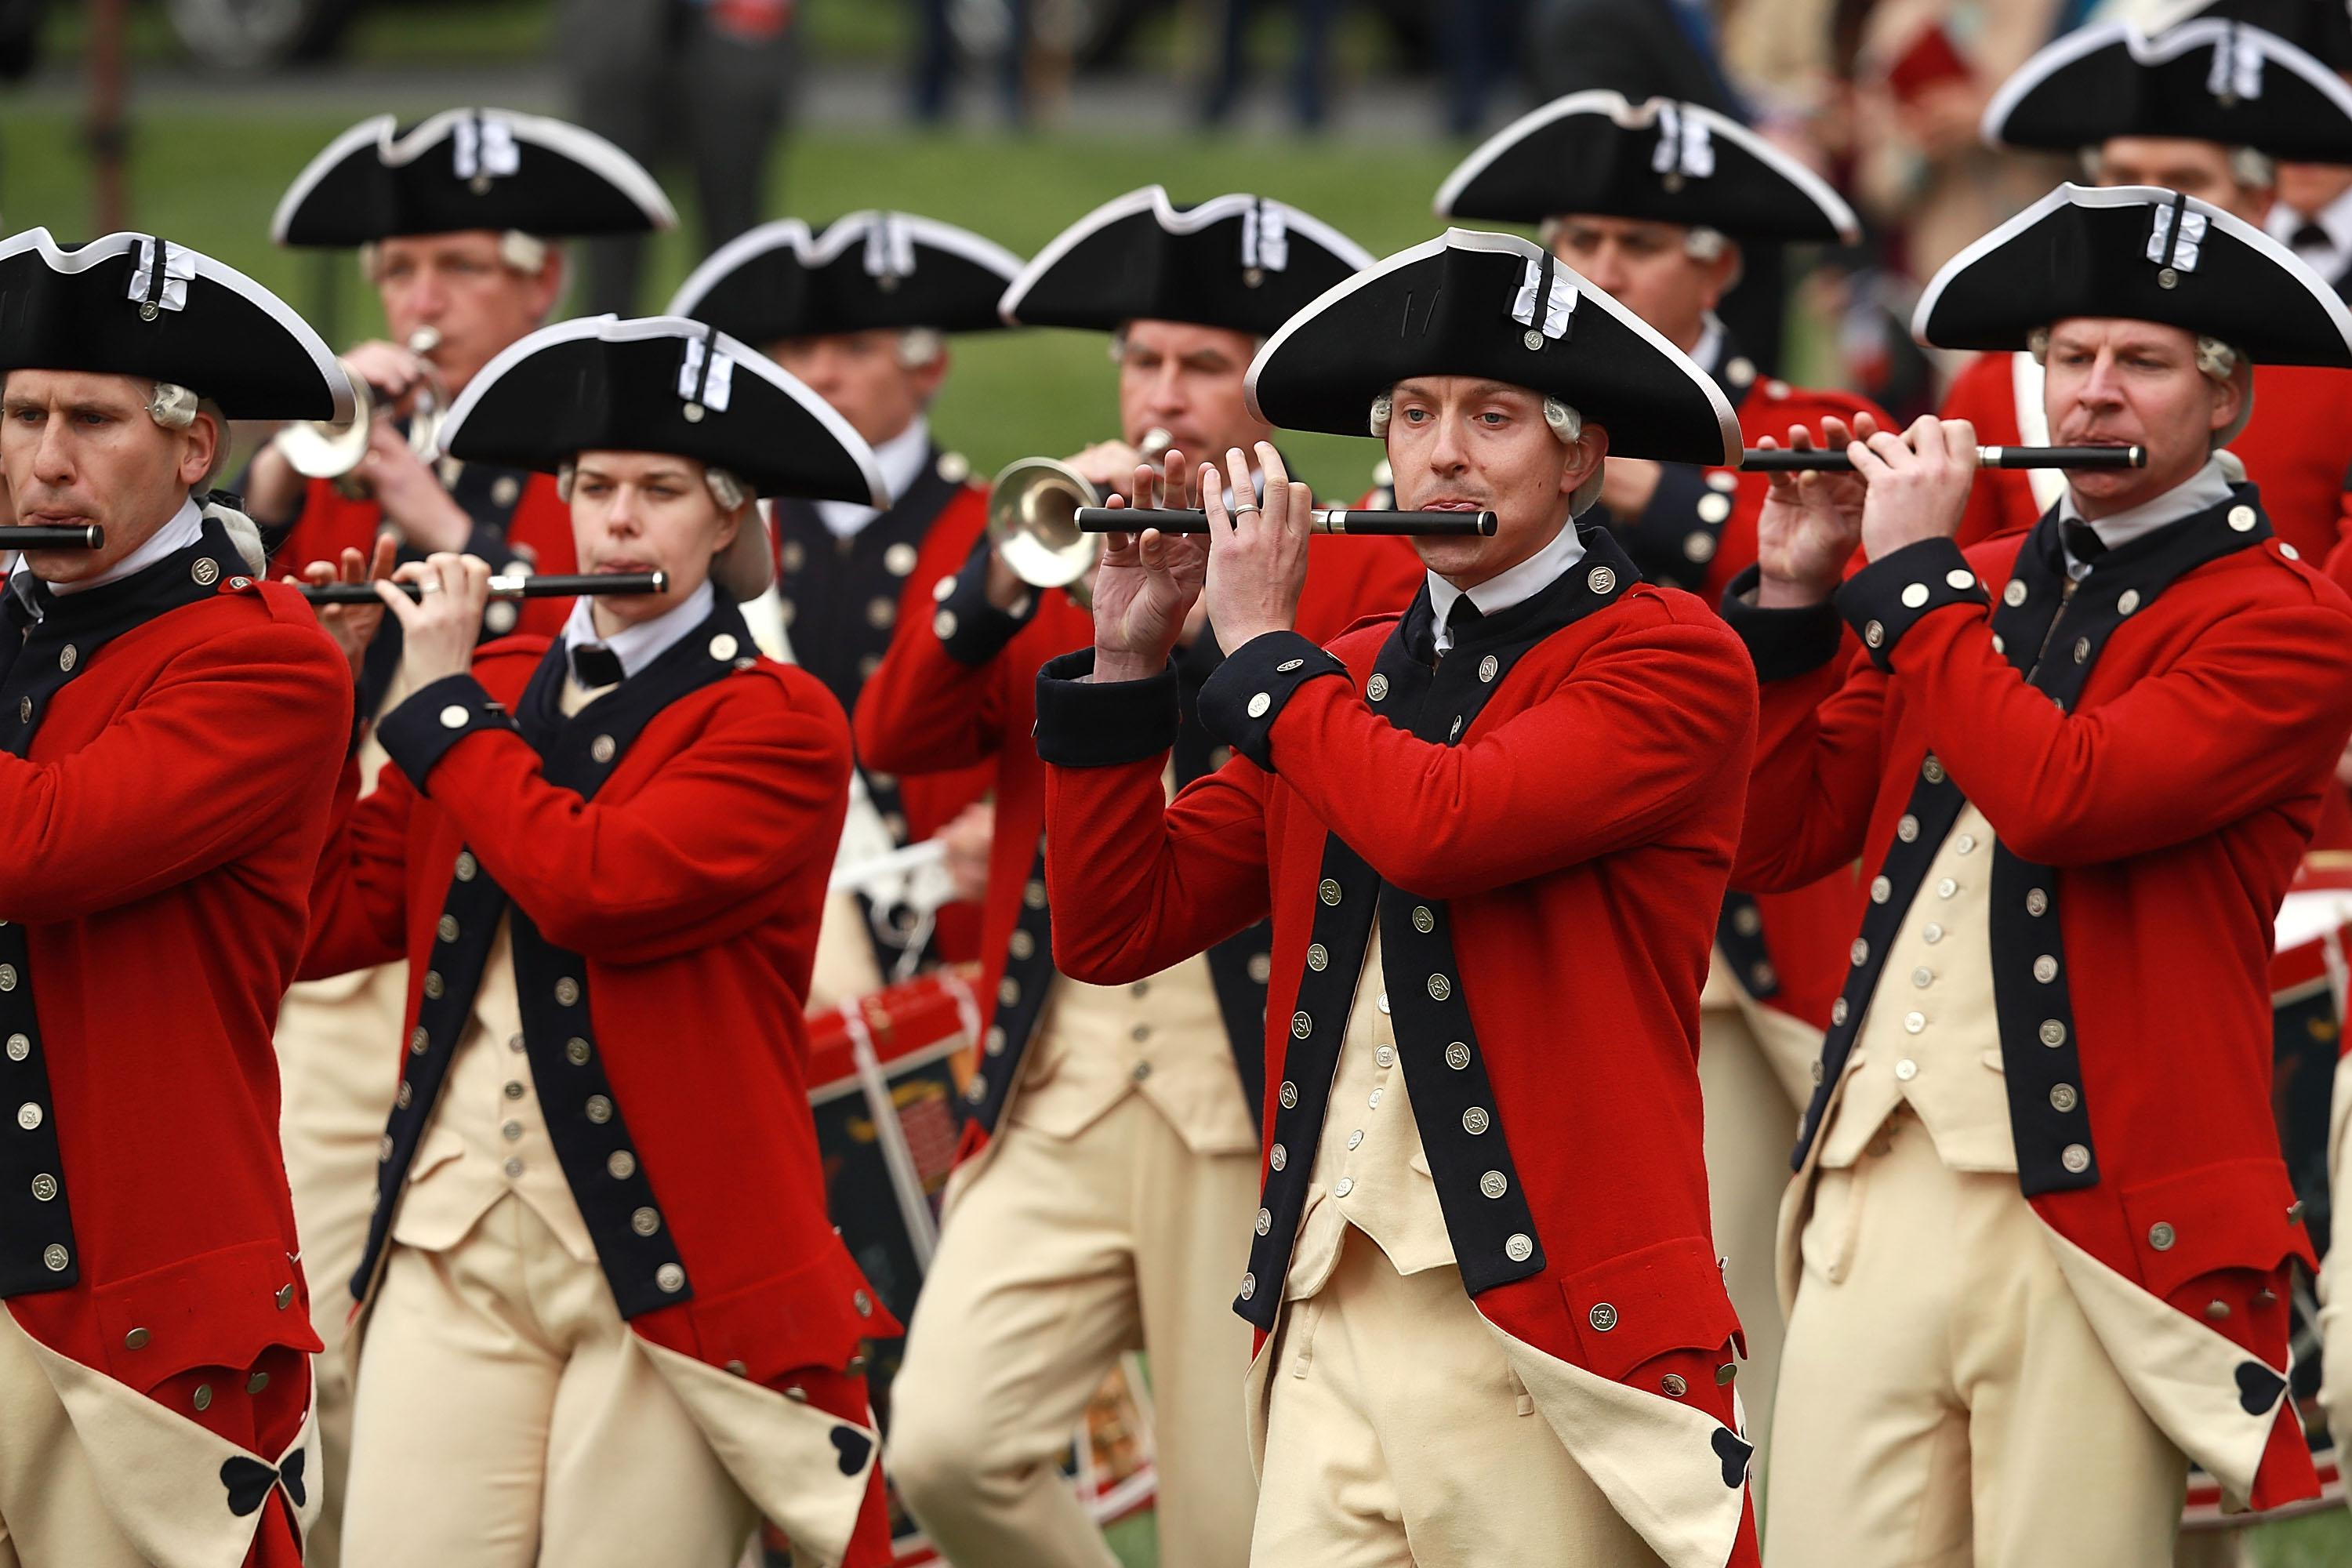 The United States Army Old Guard Fife and Drum Corps perform during the official arrival ceremony for French President Emmanuel Macron on the South Lawn of the White House April 24, 2018 in Washington, DC. Macron is in Washington for a three-day official visit that included dinner at George Washington's Mount Venon, a joint news conference with Trump and he will address a joint meeting of Congress Wednesday.